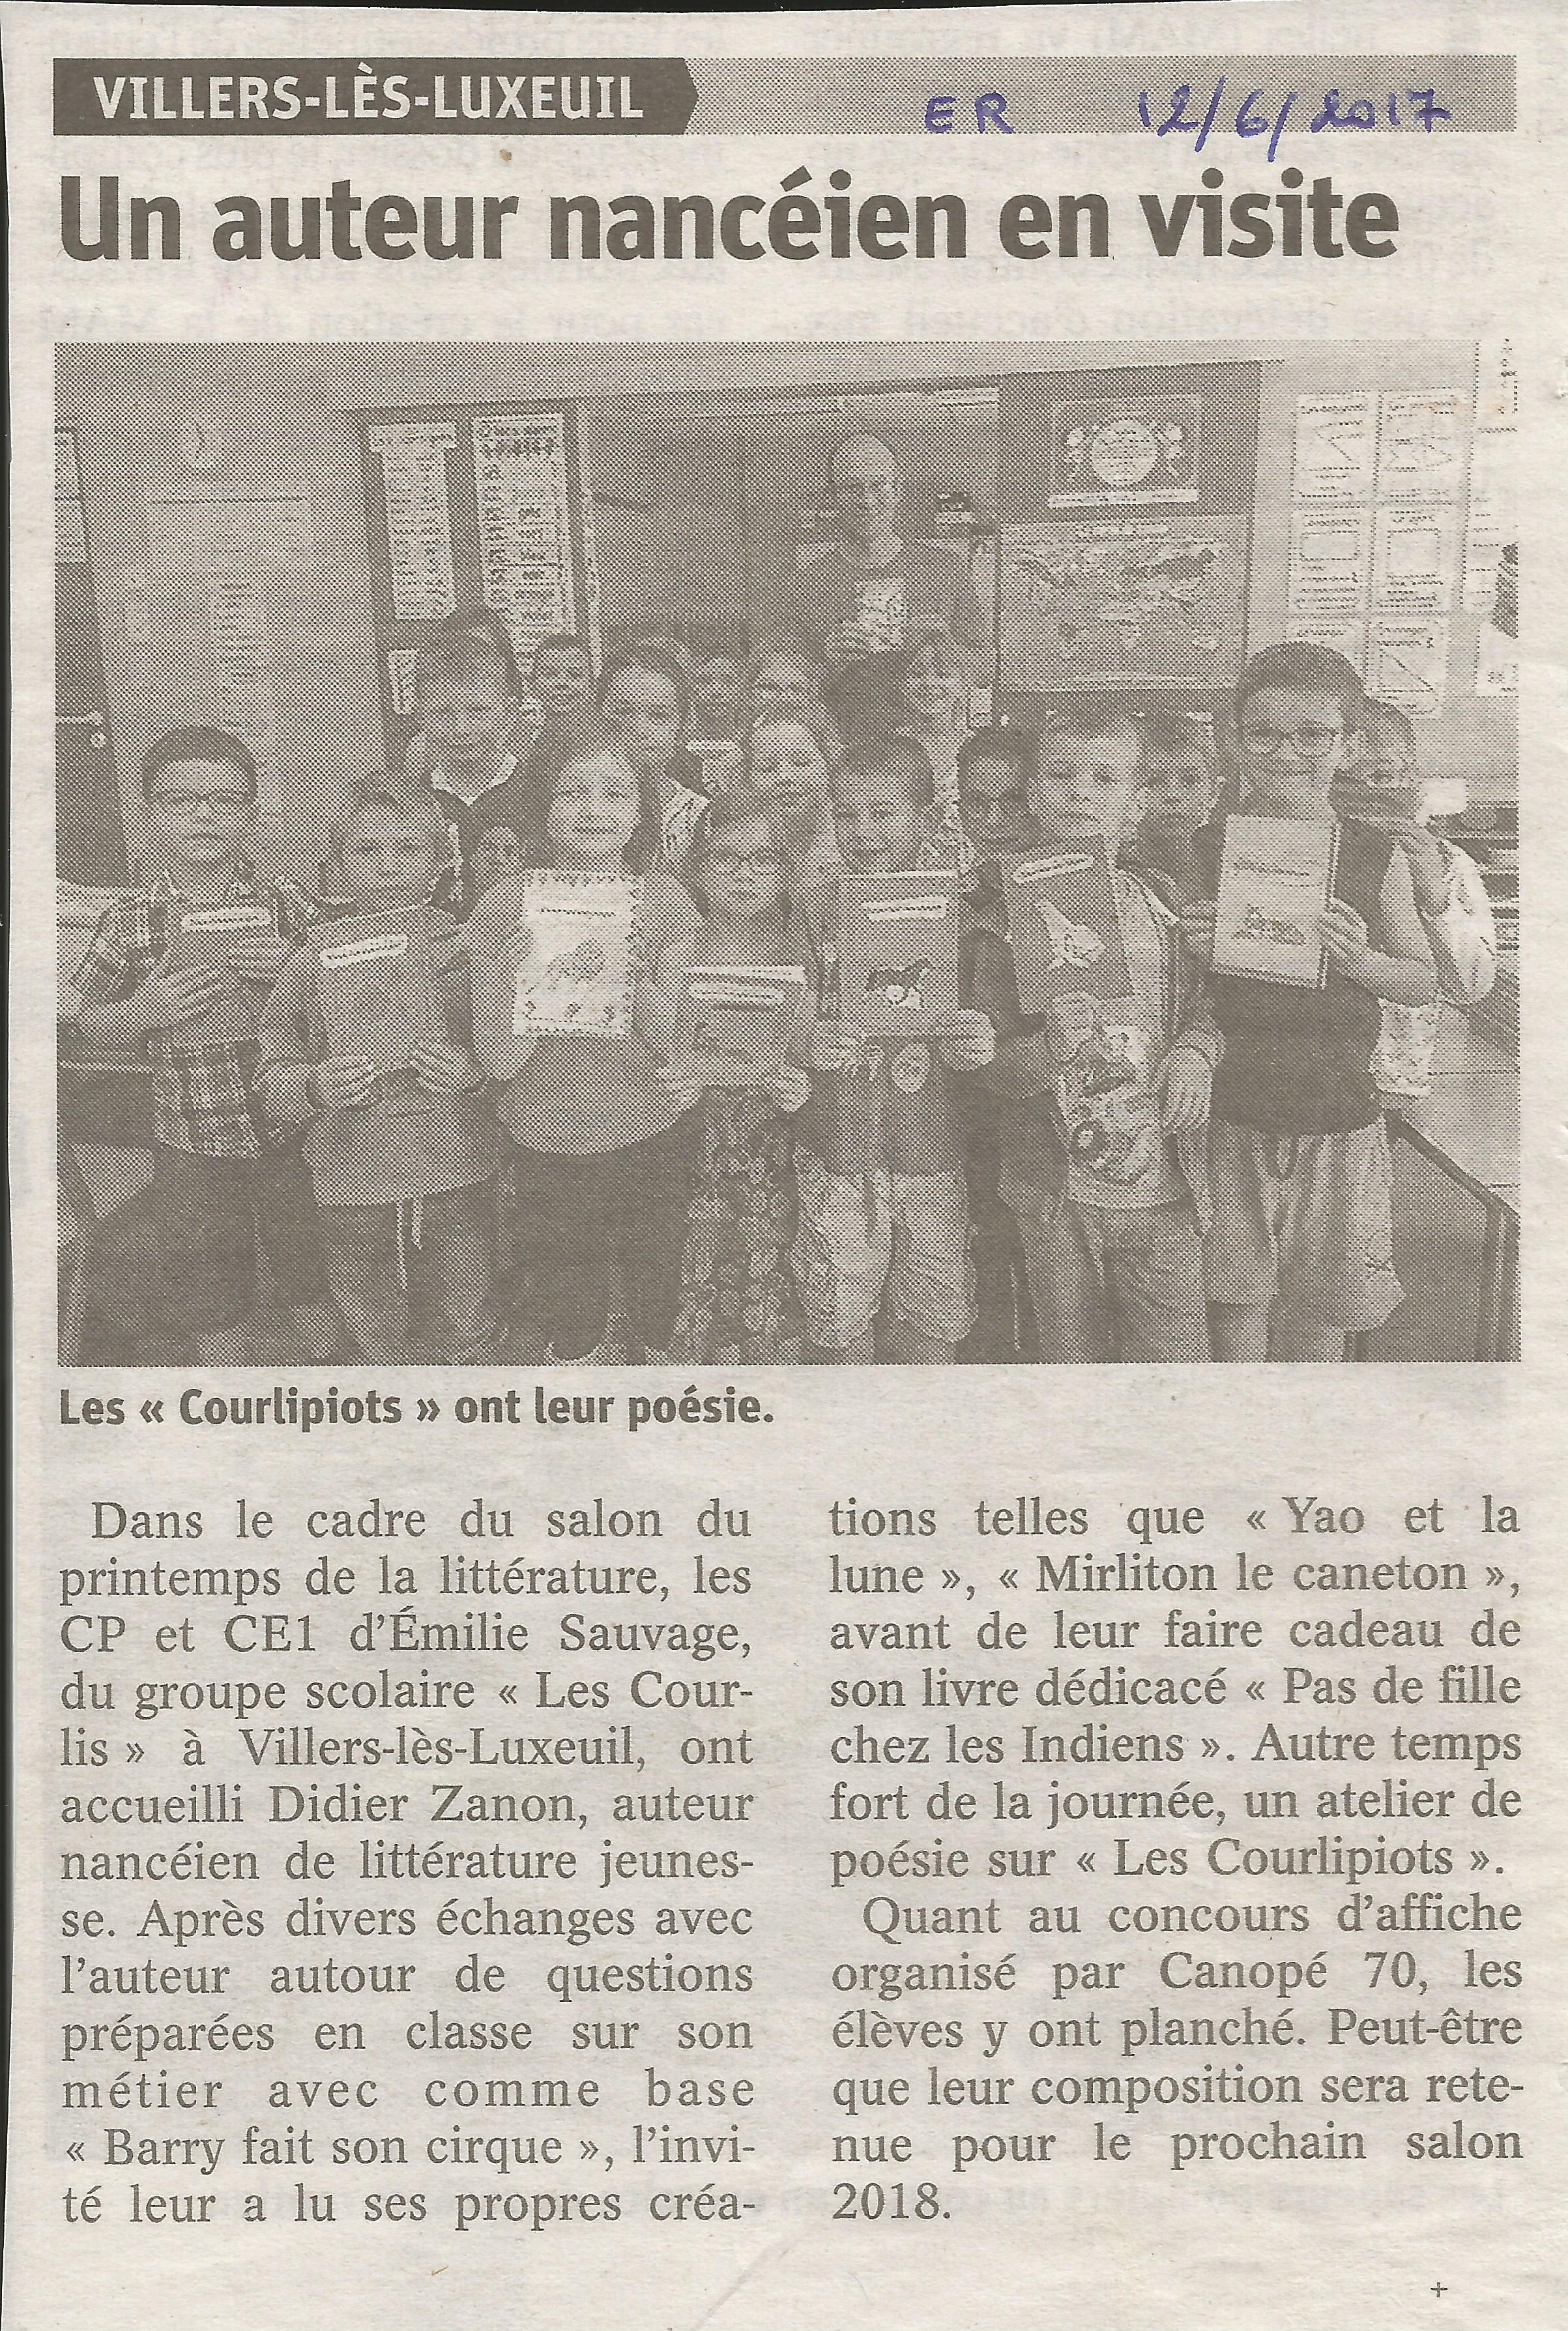 https://www.villers-les-luxeuil.com/projets/villers/files/images/2017_Mairie/Presse/2017_06_12.jpg